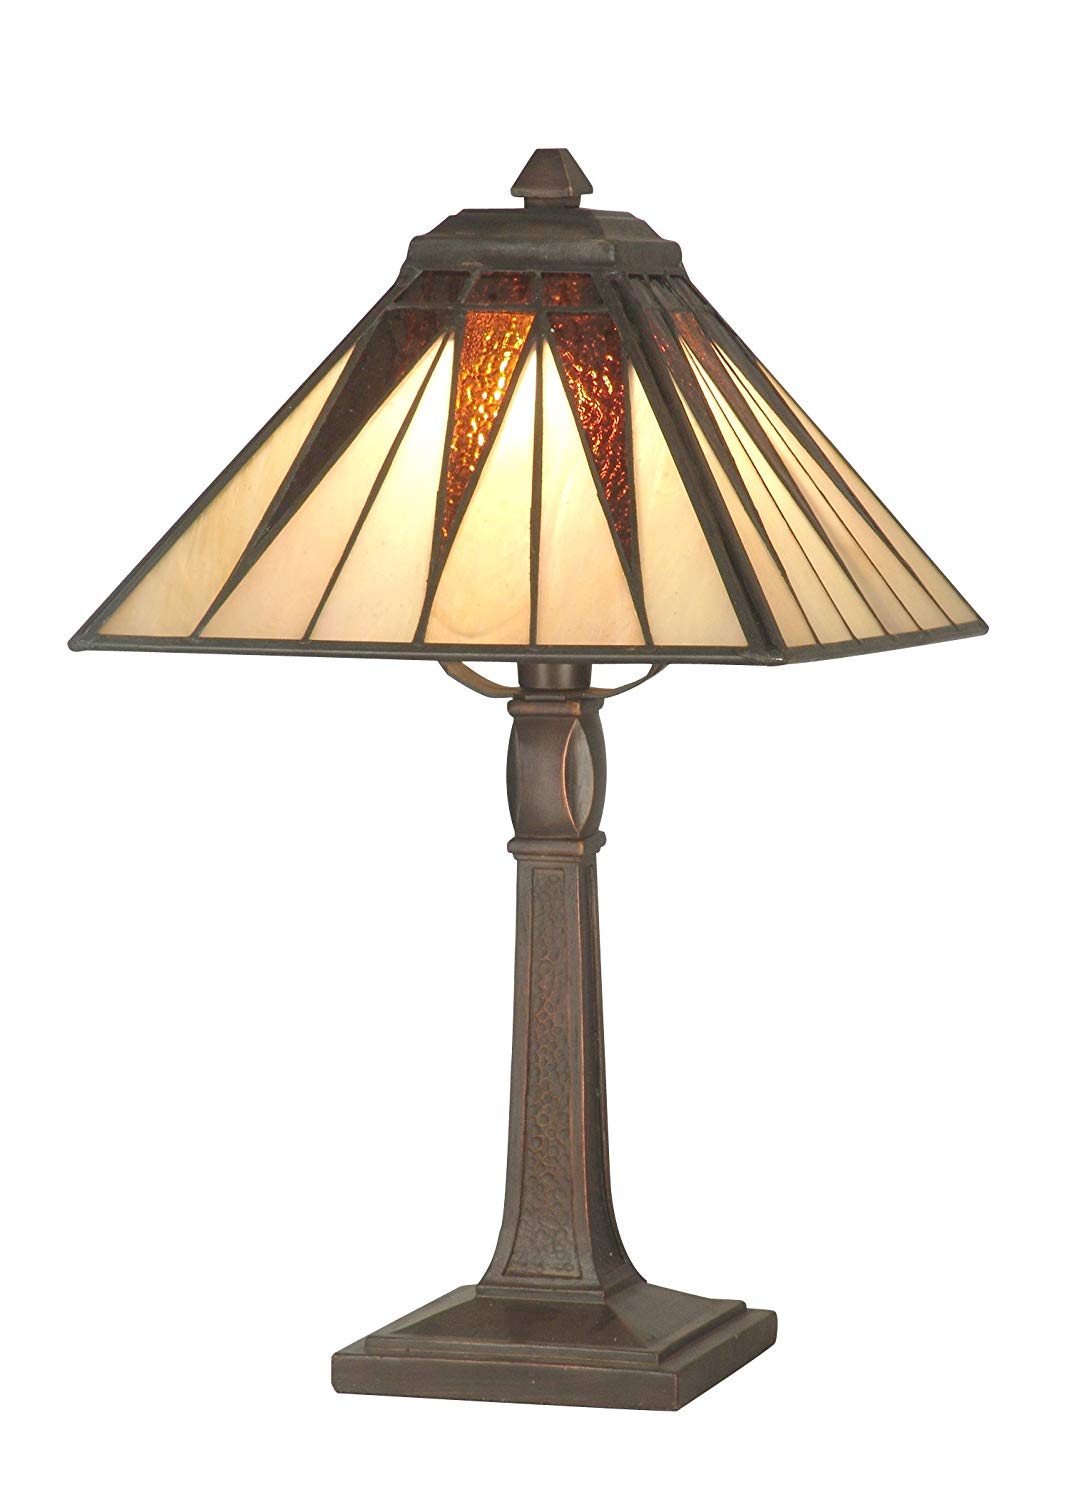 dale tiffany cooper accent lamp antique bronze and art table lamps glass shade cherry end tables queen anne walnut bedside plastic garden furniture inexpensive for living room